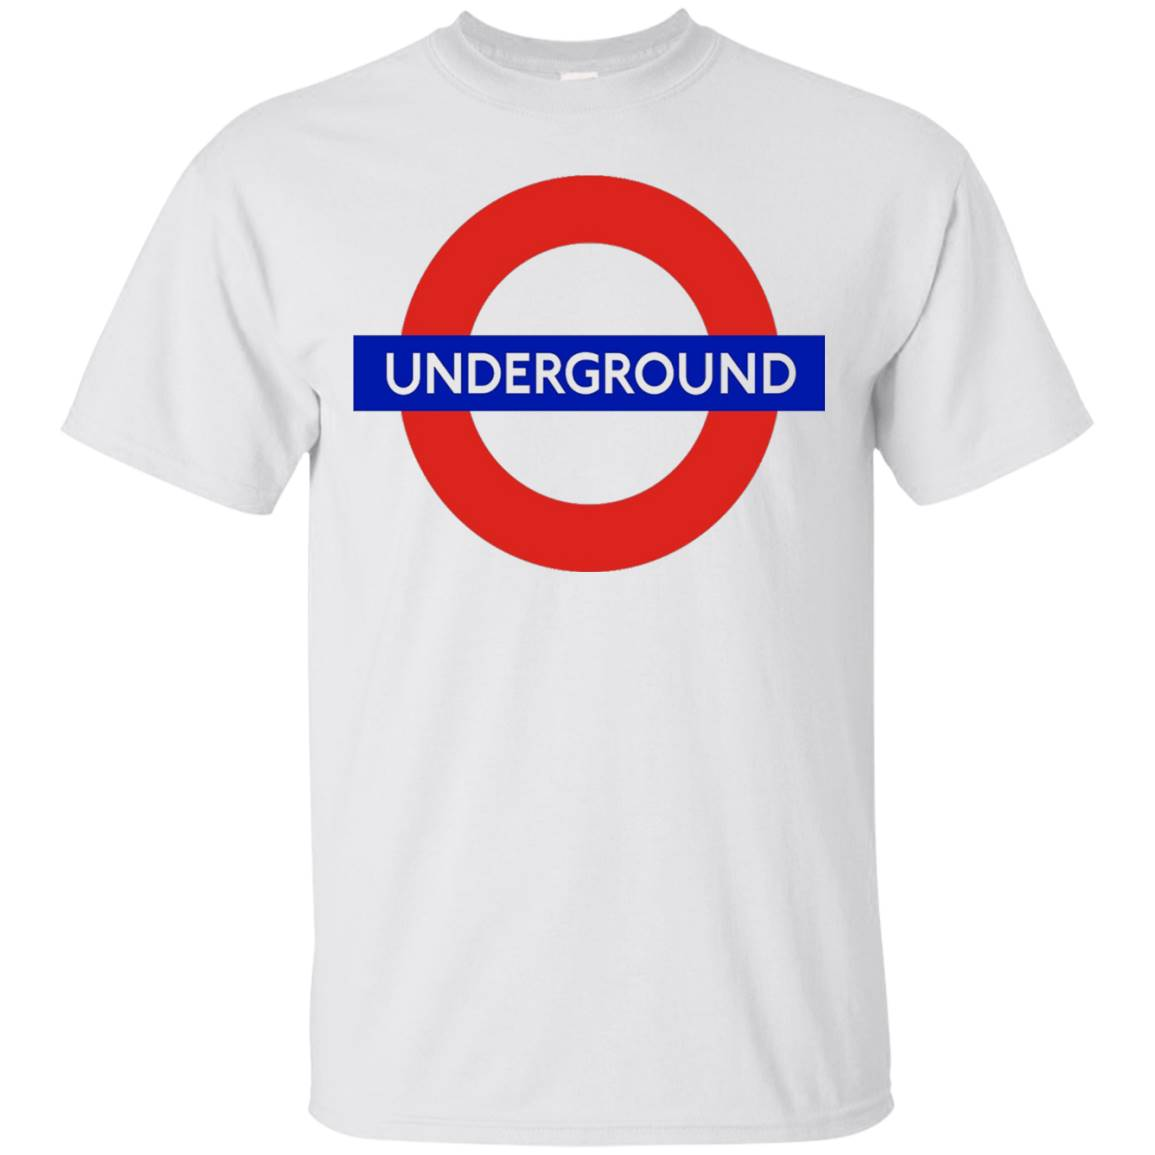 London Underground Tshirt – Tube teeshirt